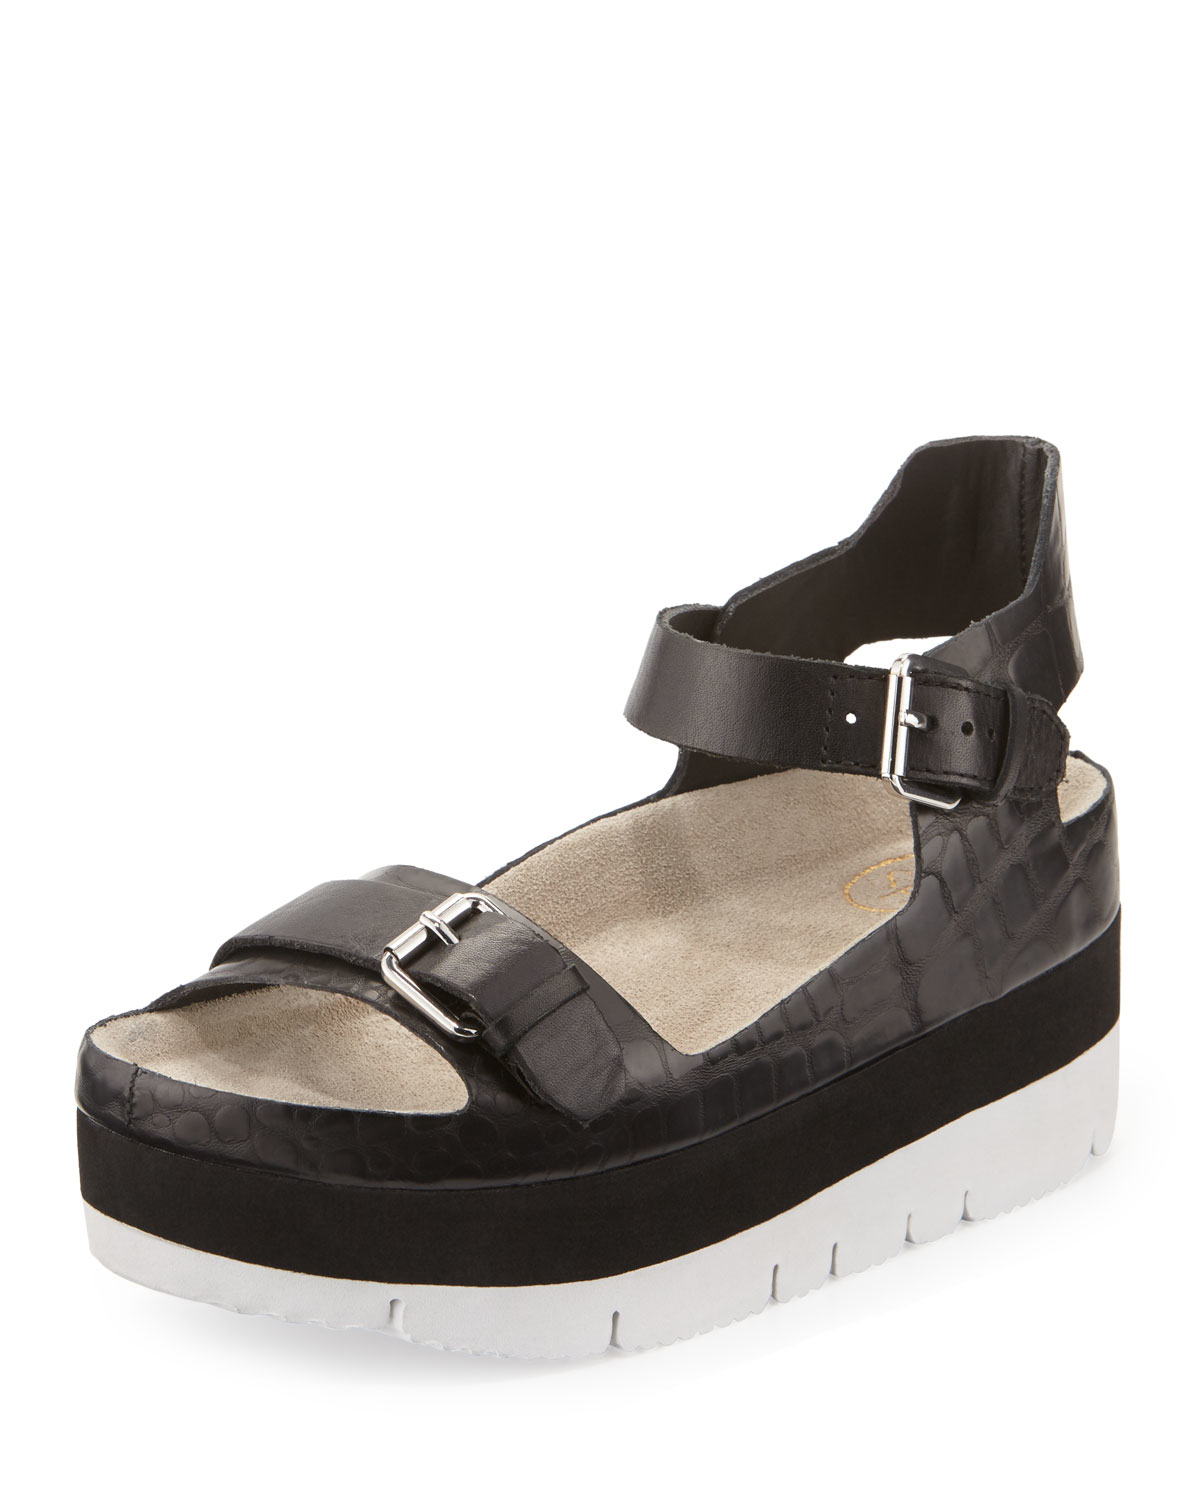 725a39a921a5 Lyst - Ash Vera Crocodile-embossed Leather Sandal in Black